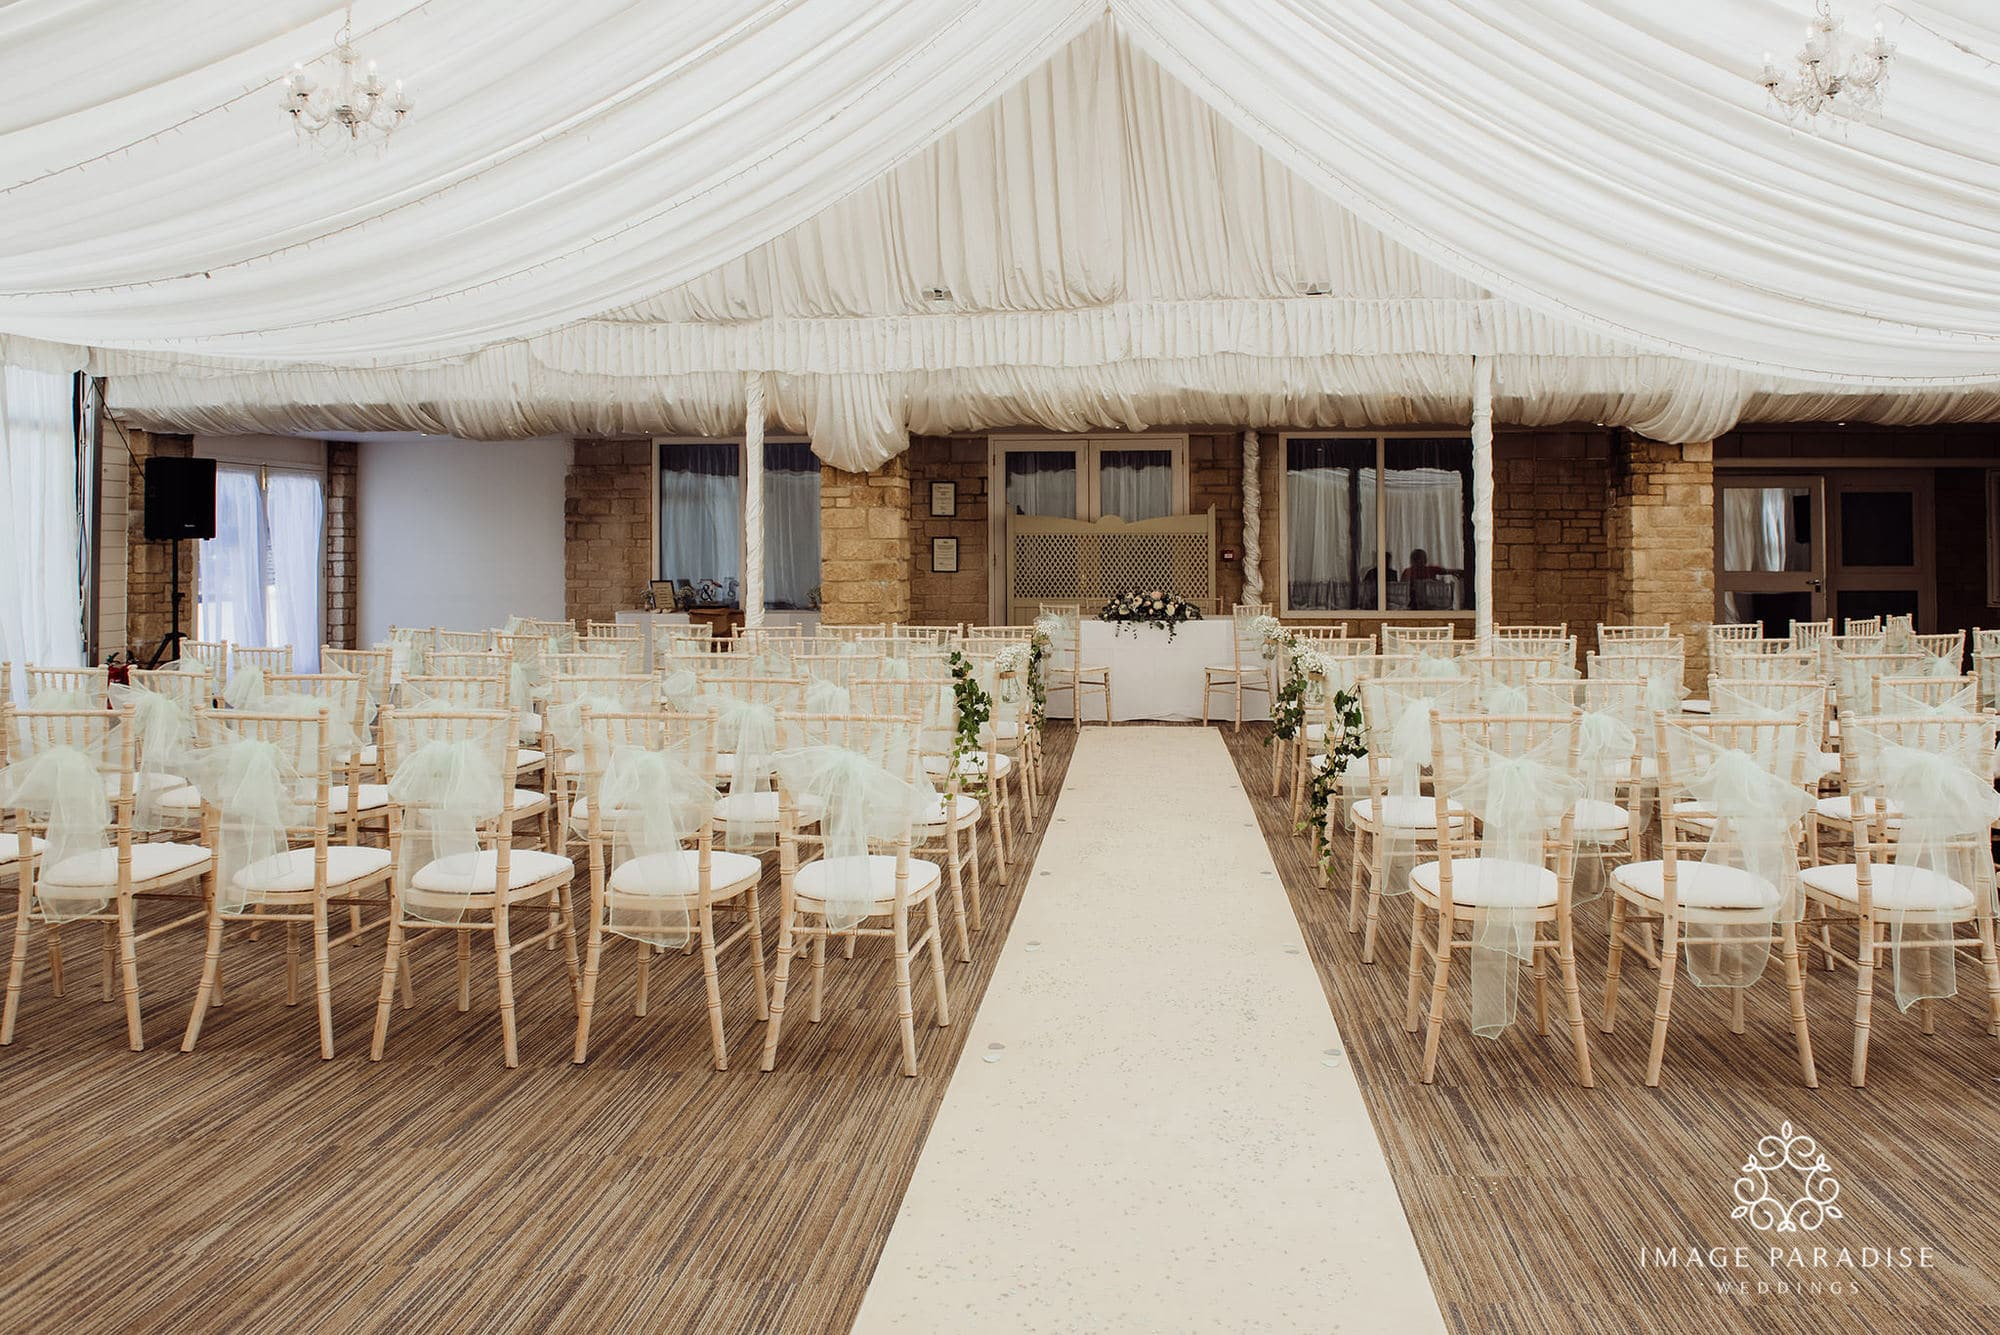 View from the back of the Cotswolds hotel and spa wedding venue with chairs and cream aisle